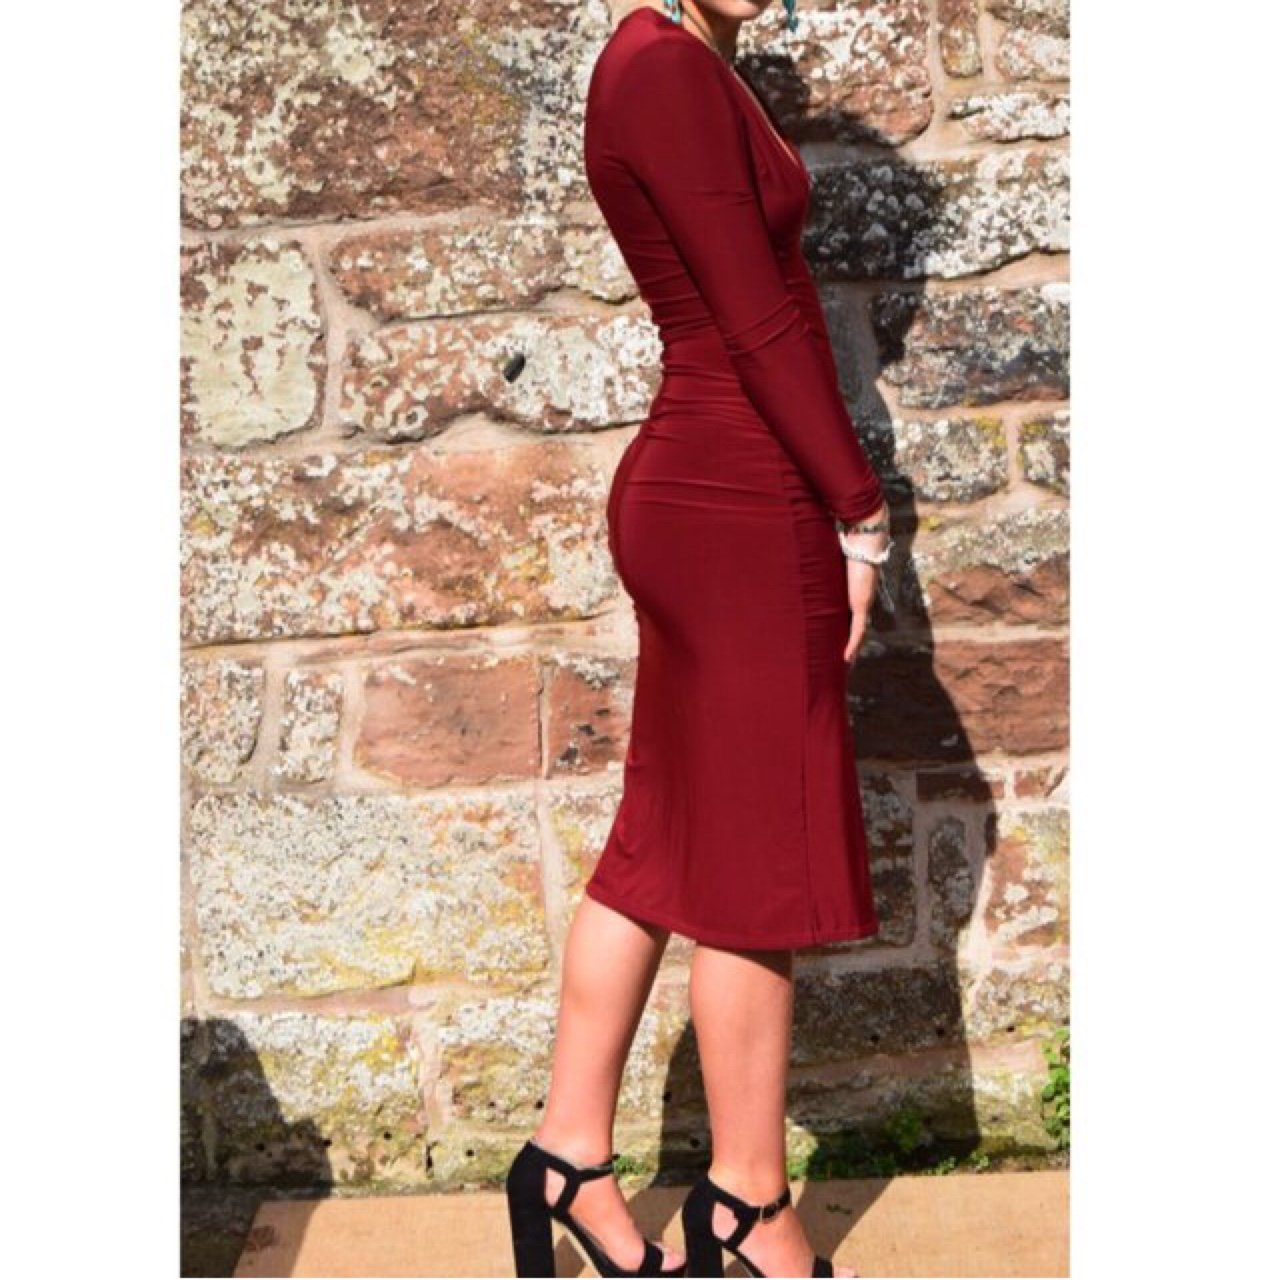 2548a65ad2 Missguided burgundy dress size 8. Slit in the left leg. Been - Depop